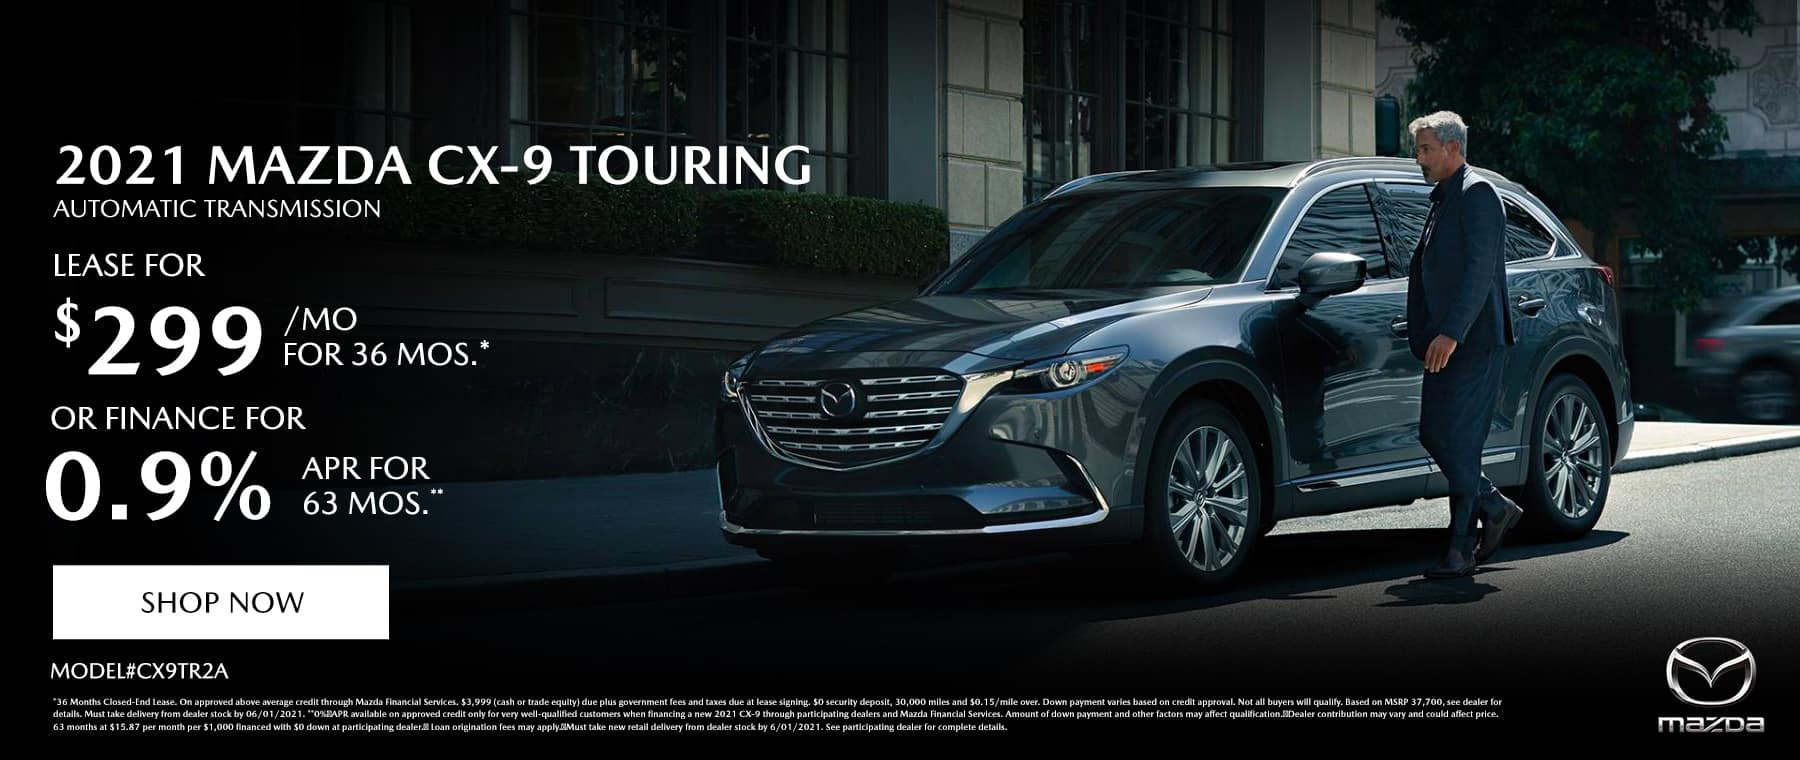 2021 MAZDA CX-9 TOURING AUTOMATIC (MODEL#CX9TR2A) Lease Specials: $299/month @ 36 months* OR Special Finance: 0% APR for 63 Months**